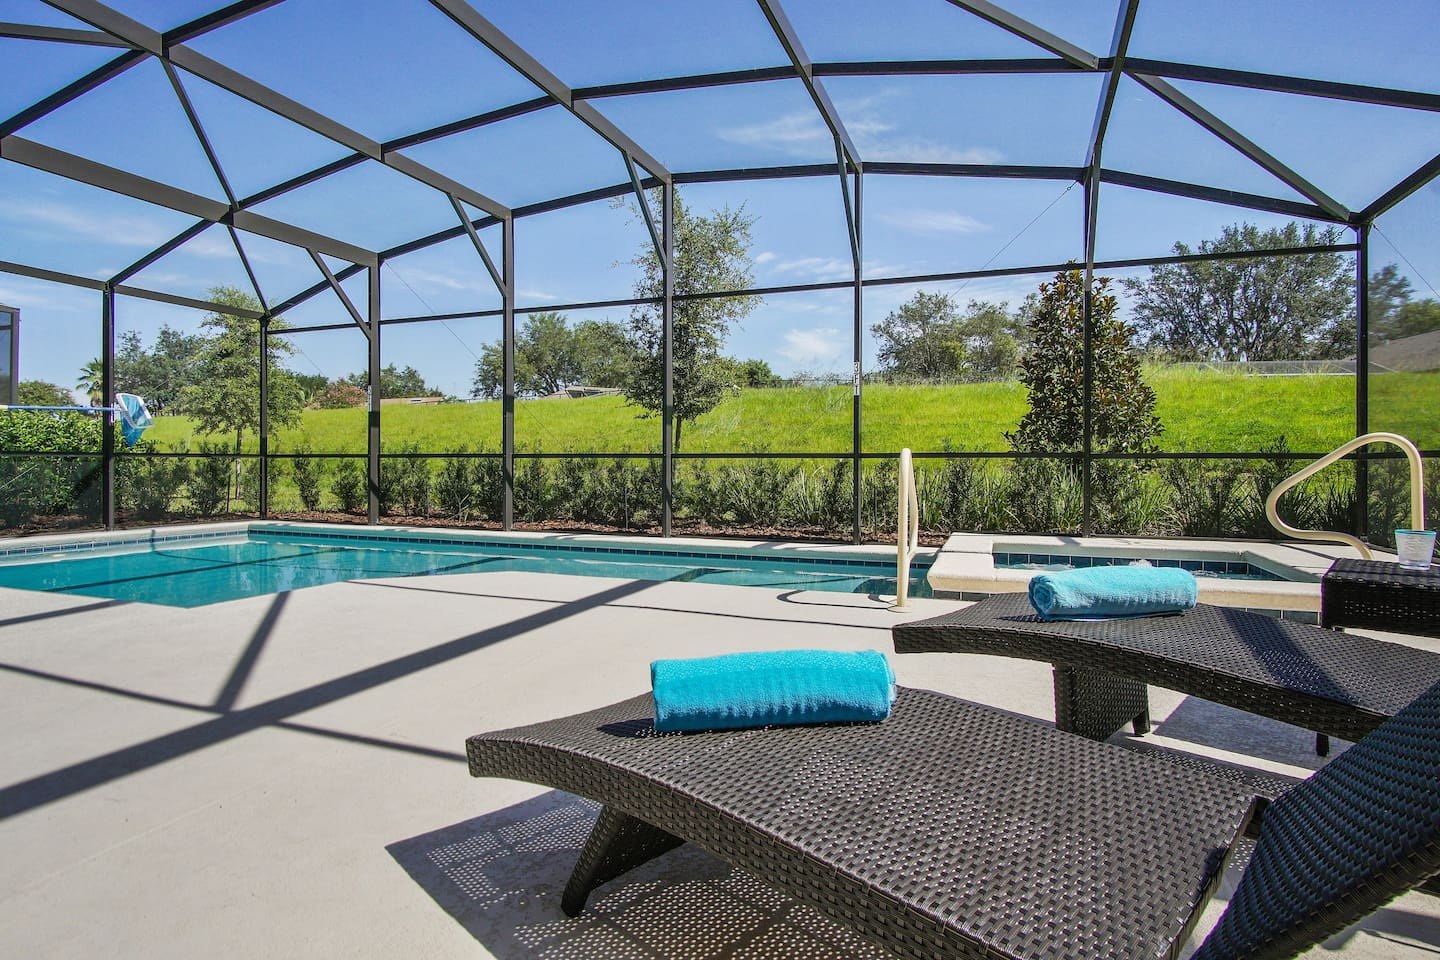 Soak up the sunshine in your own private pool area!